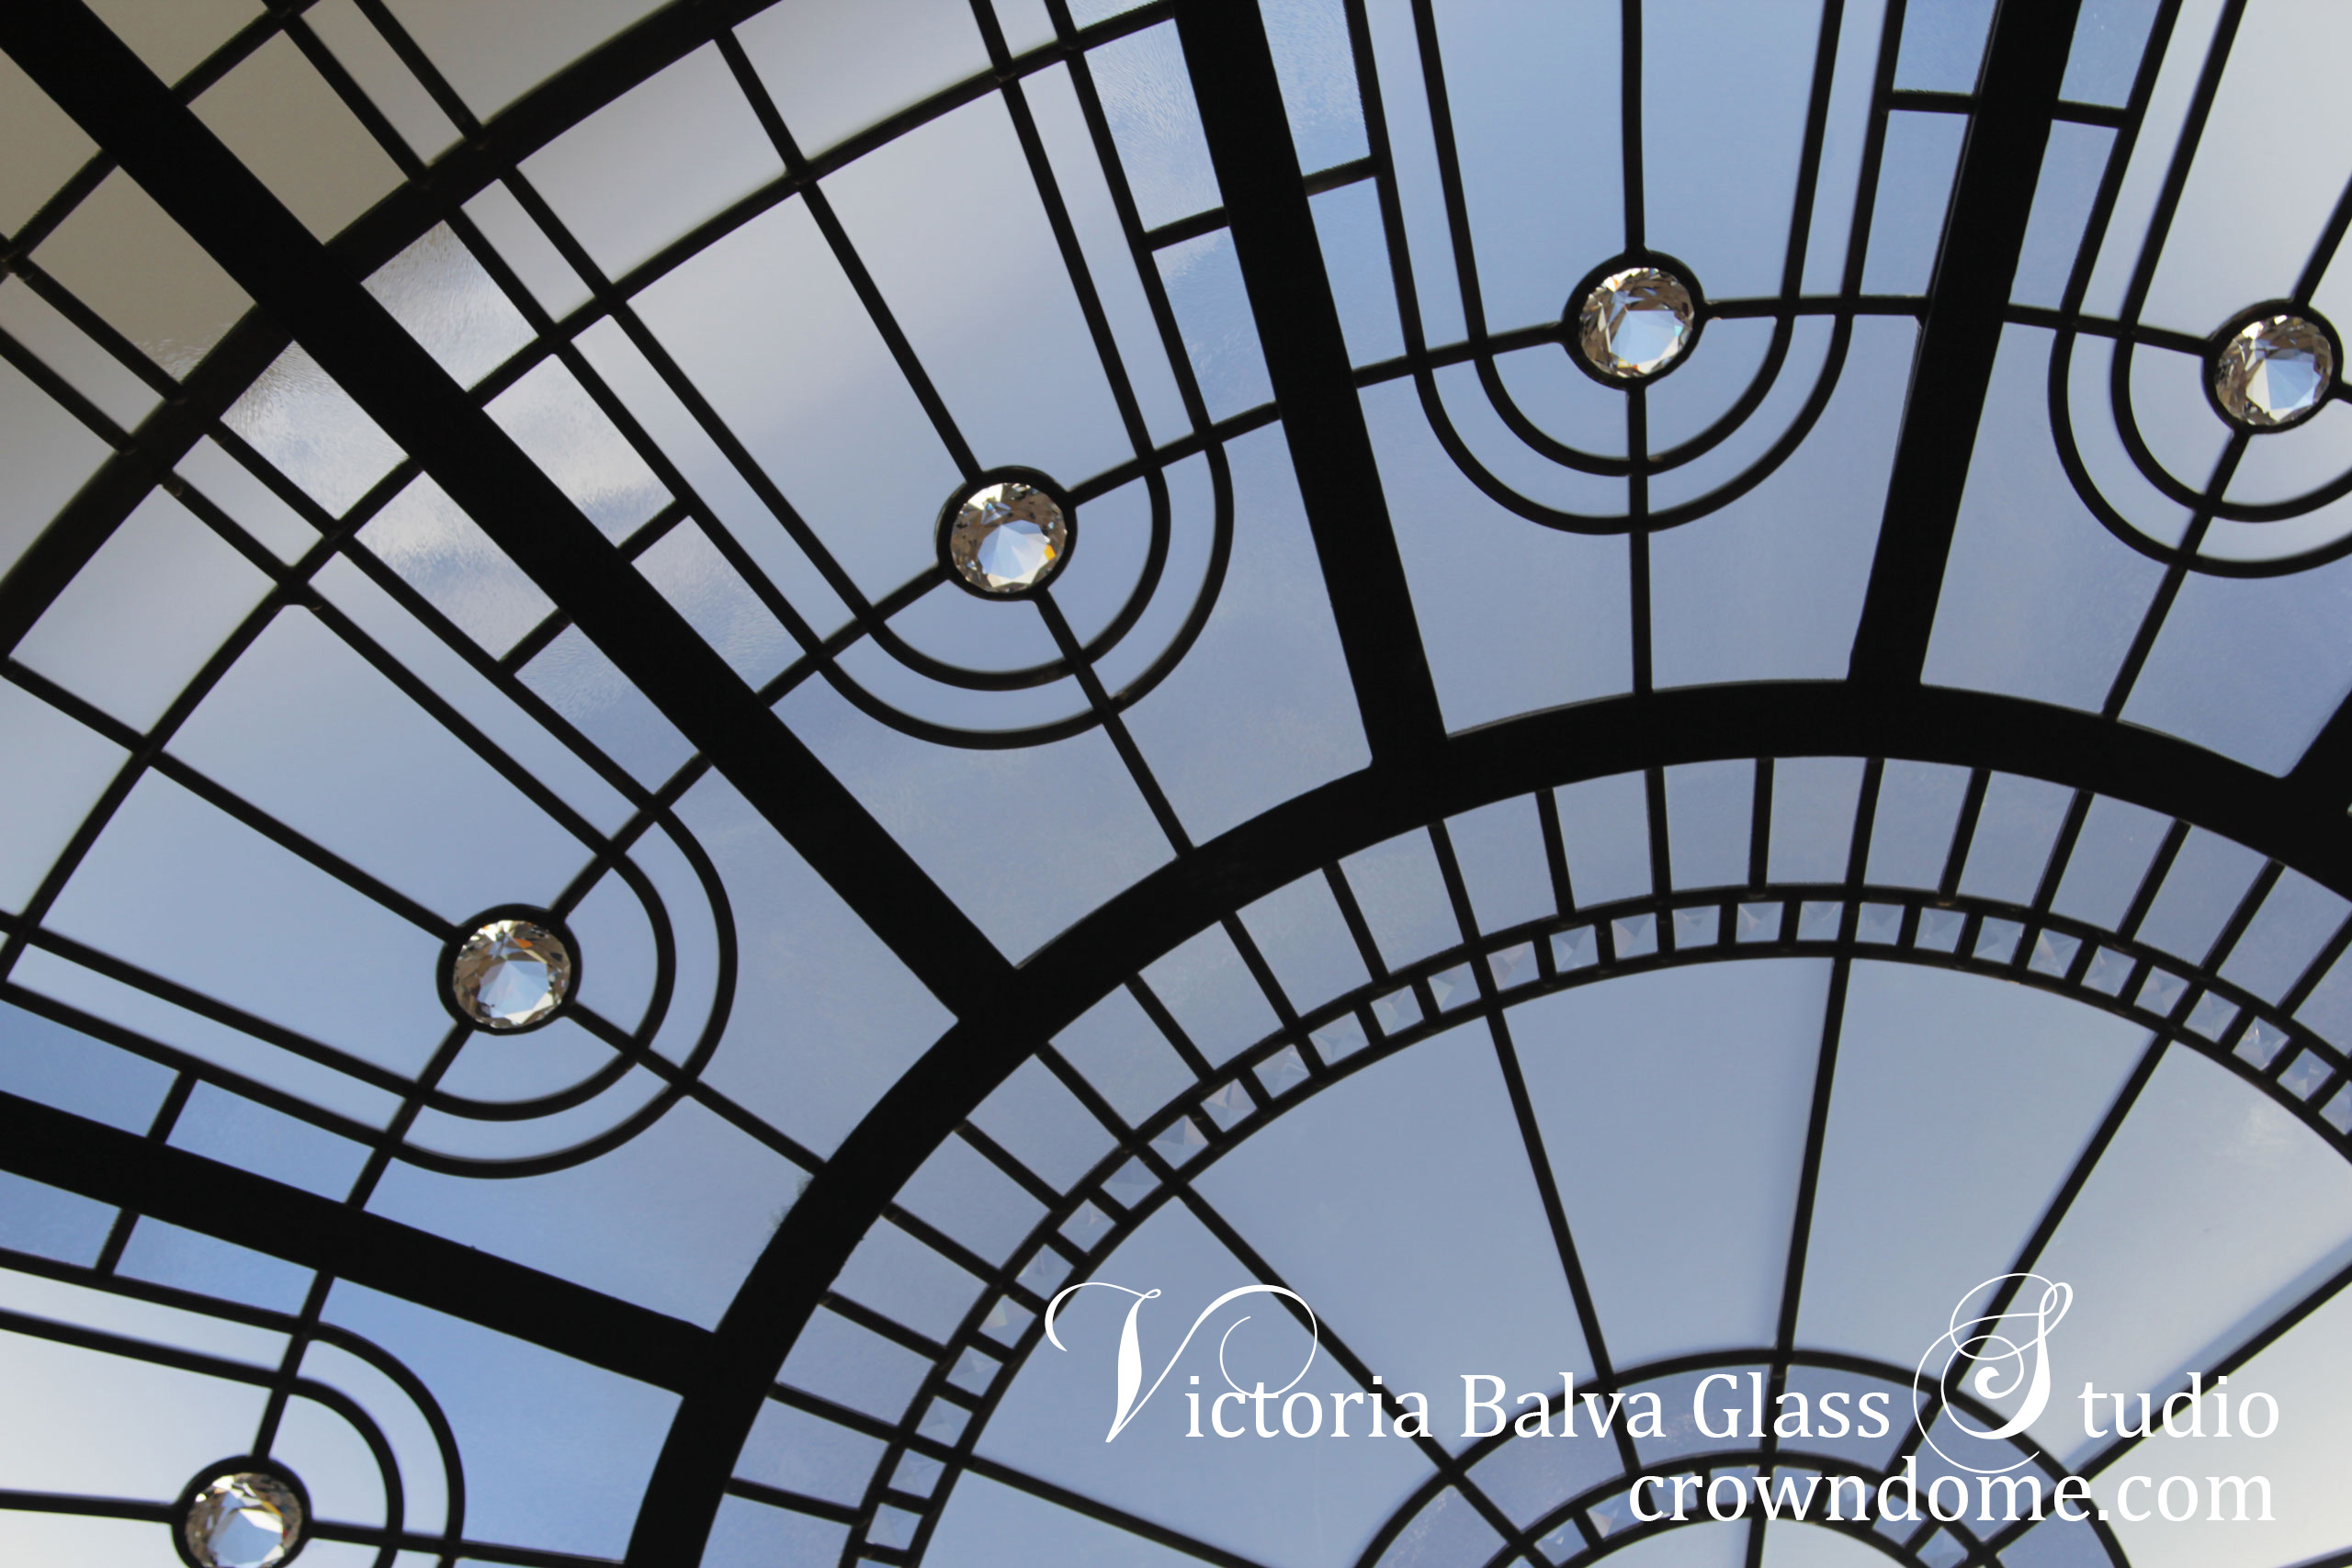 Large stained leaded glass dome skylight ceiling detail for a custom built residence in Toronto. Leaded glass dome skylight with clear textured glass and crystal accent jewels let's natural light in adding style and beauty to the interior space of the house. Large stained leaded glass dome ceiling in minimal contemporary design for a modern house